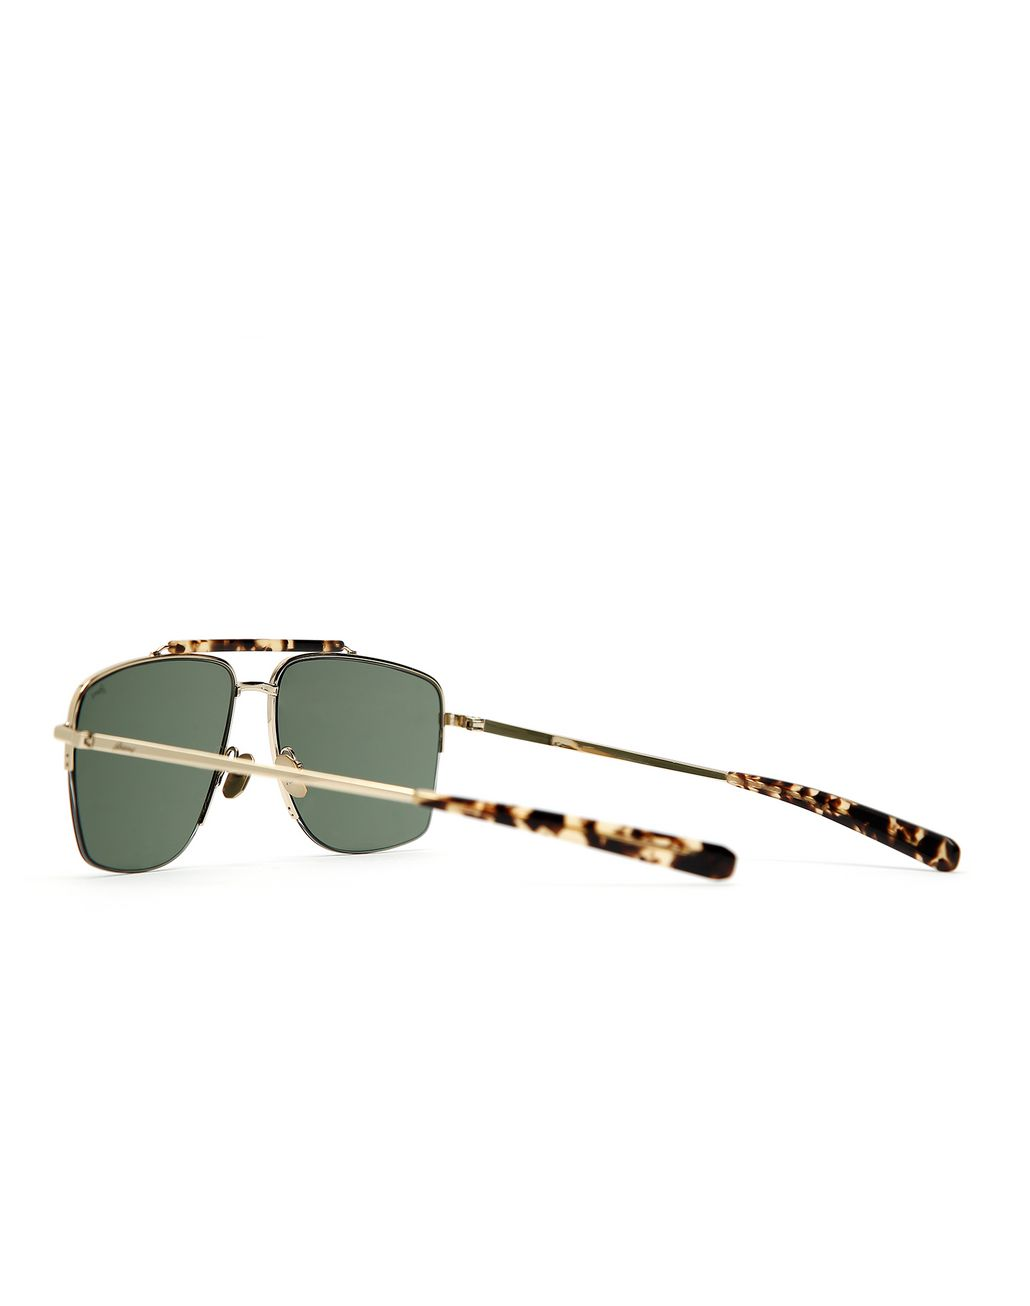 BRIONI Gold and Havana Caravan Sunglasses with Green Lenses Sunglasses Man d